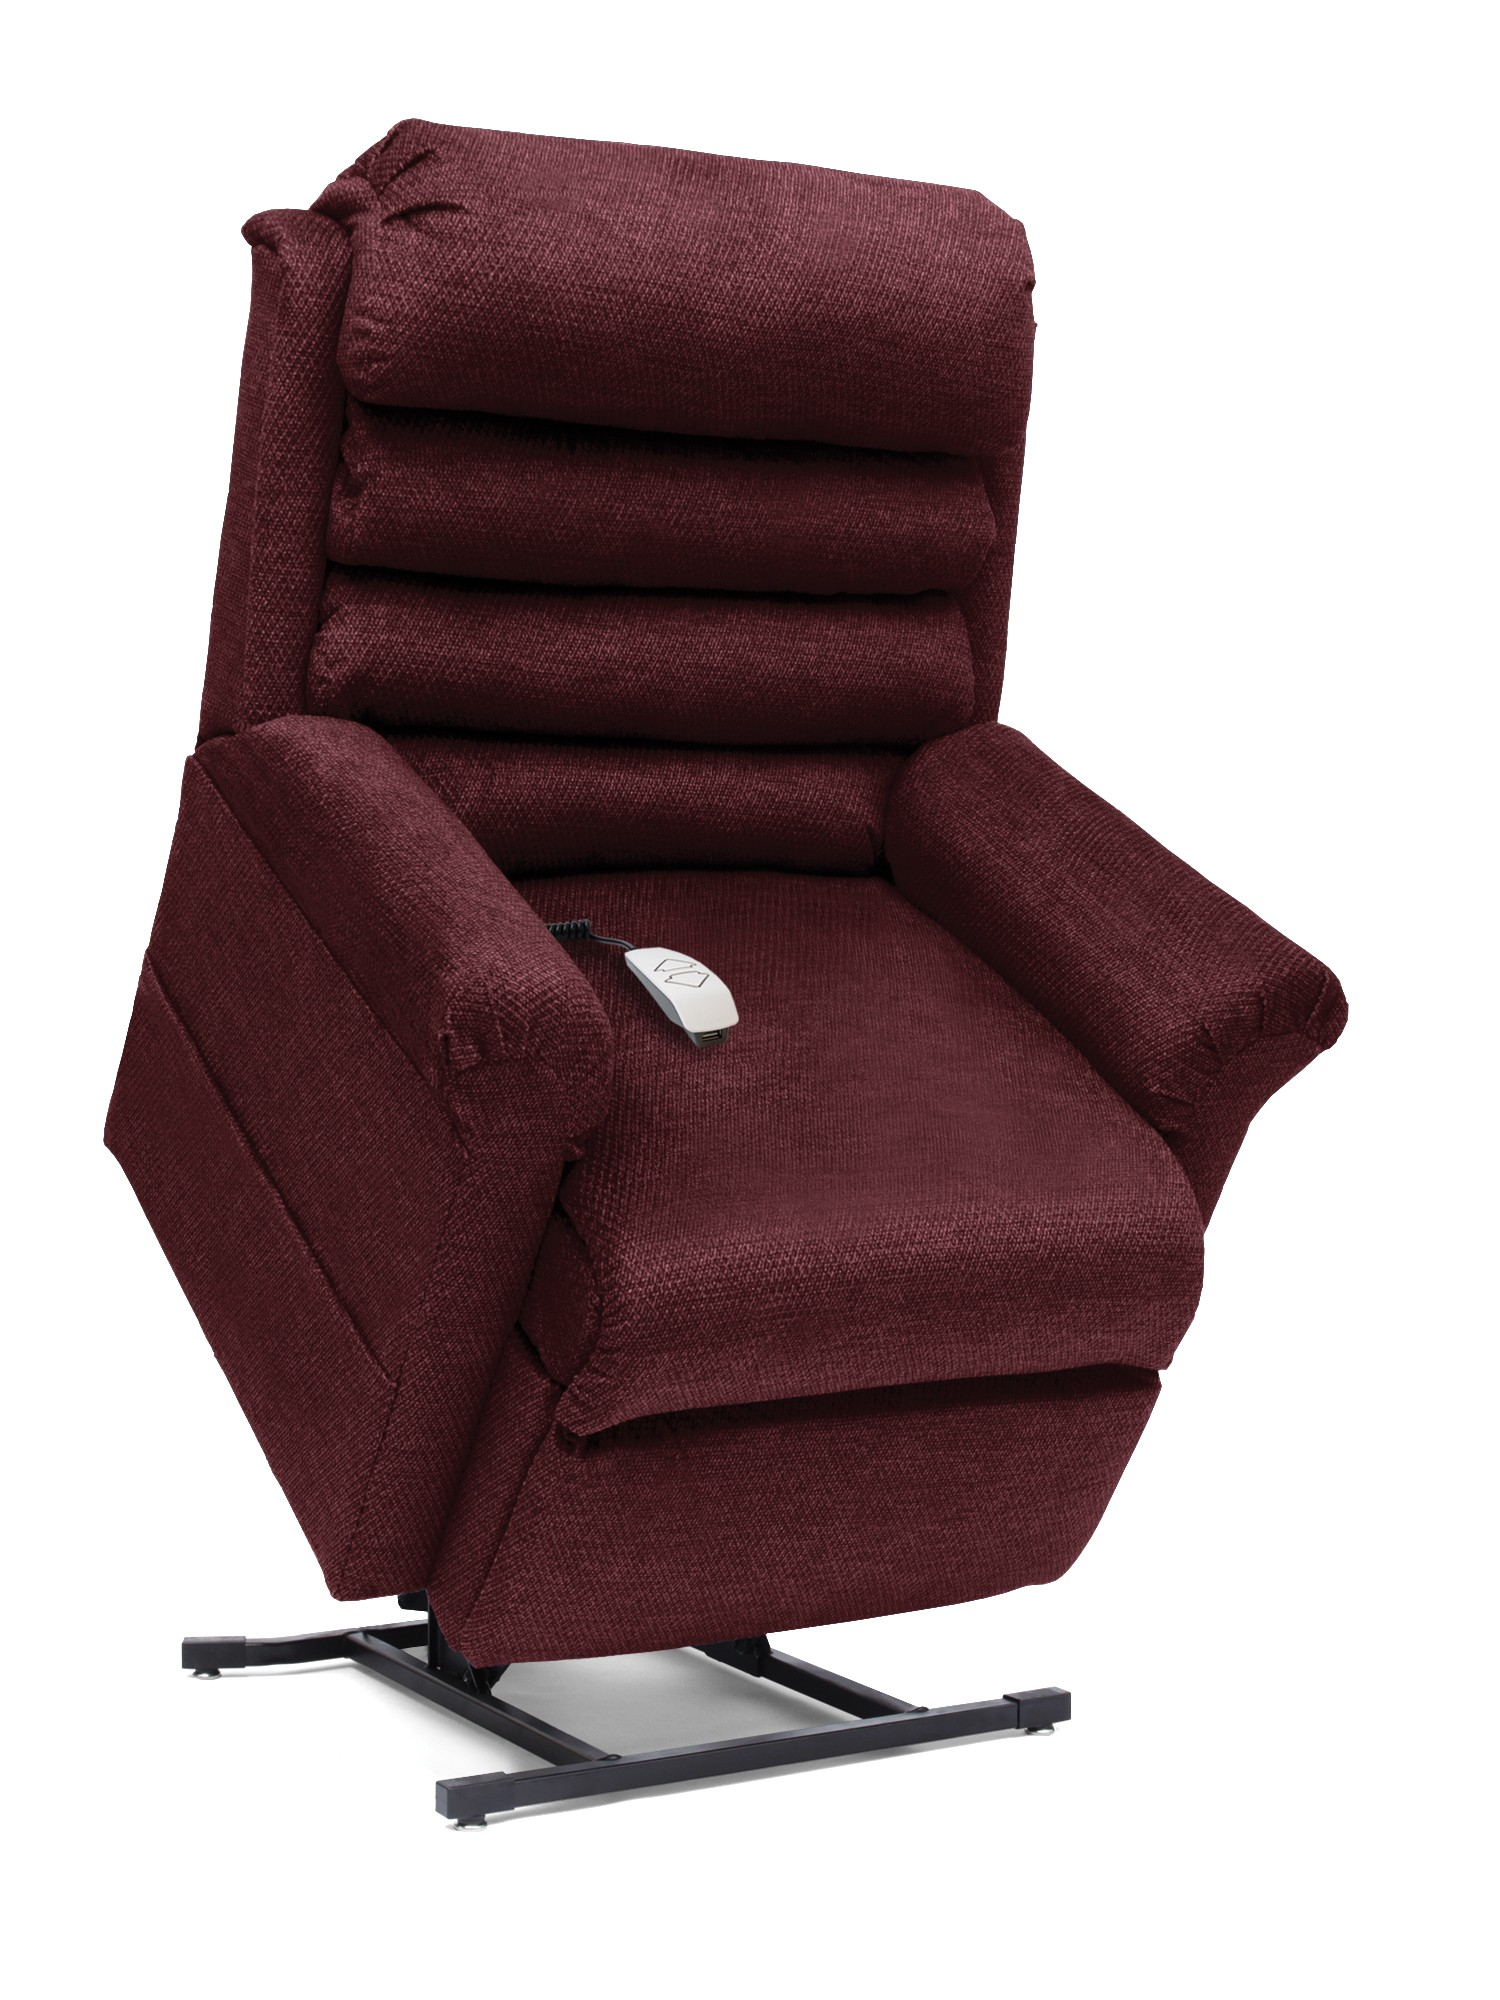 Lift Chair Rental Pride Elegance Collection Lift Chair Waterfall Back Lc